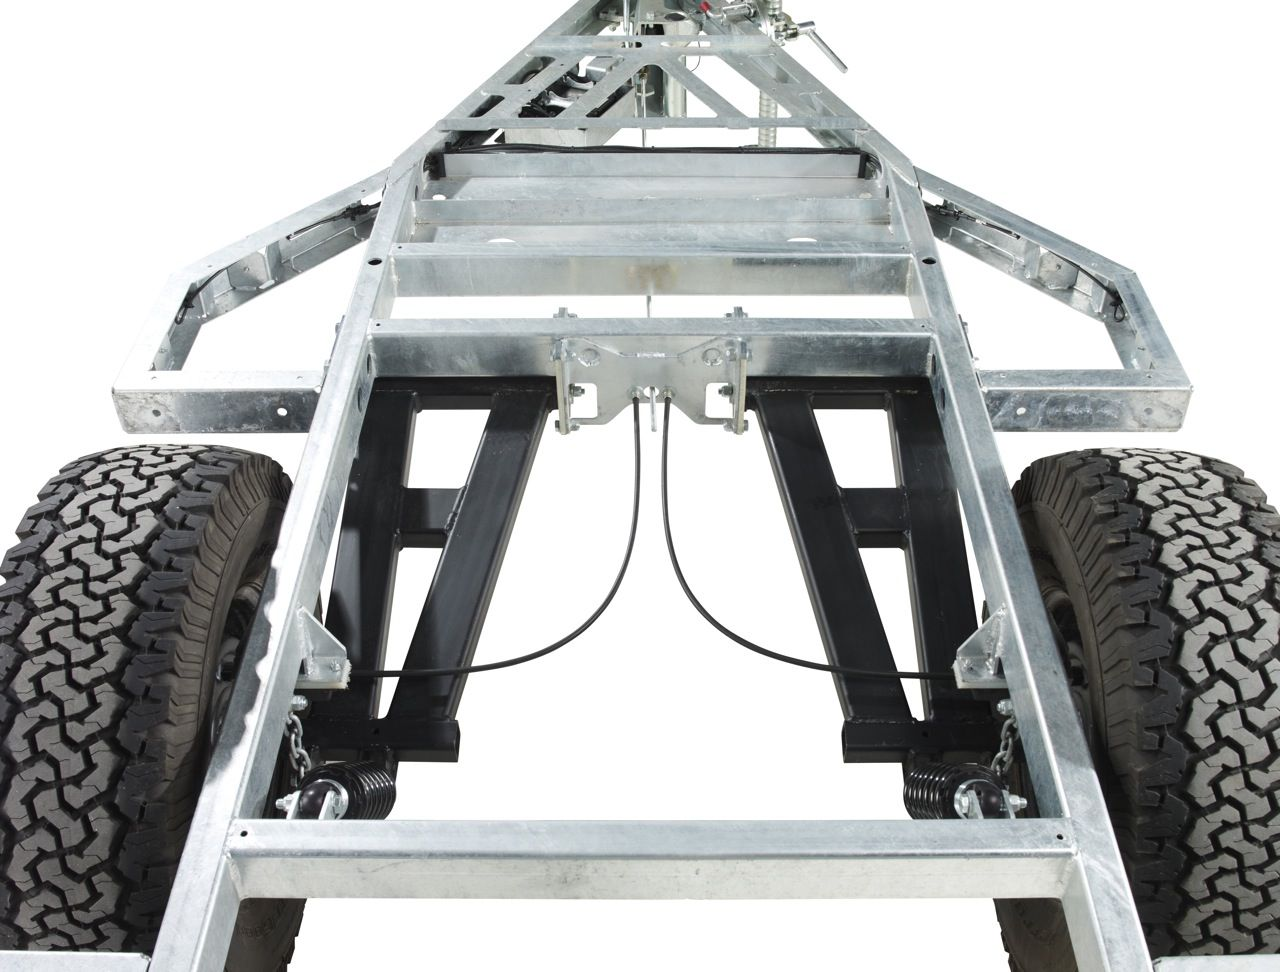 Chaser Adventure Trailer Chassis Suspension Overview